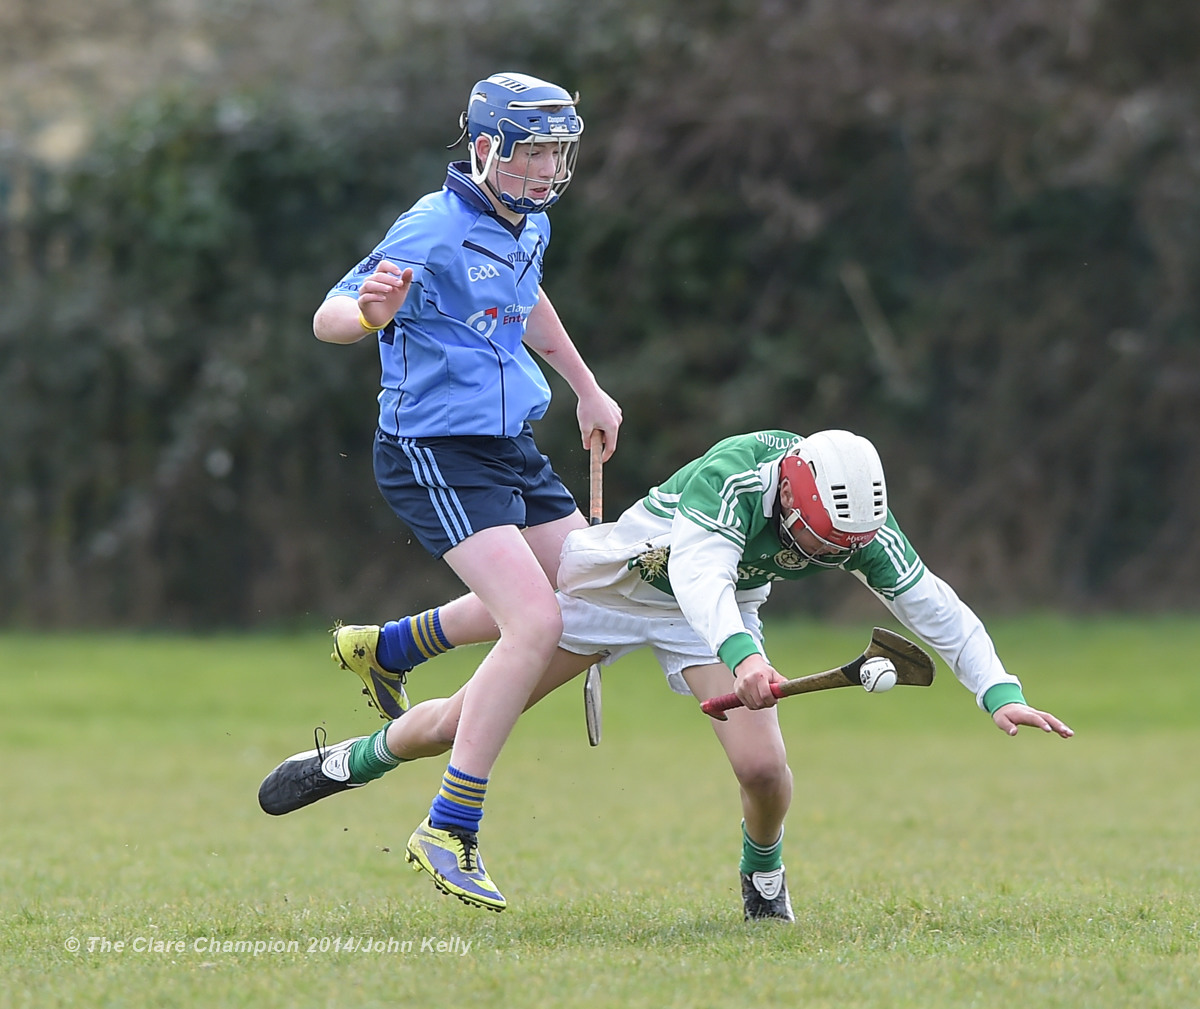 Martin Walsh of Scariff Community College  in action against Eoin Fitzgerald of Ennistymon CBS during their Munster U-15 D final at Clarecastle. Photograph by John Kelly.